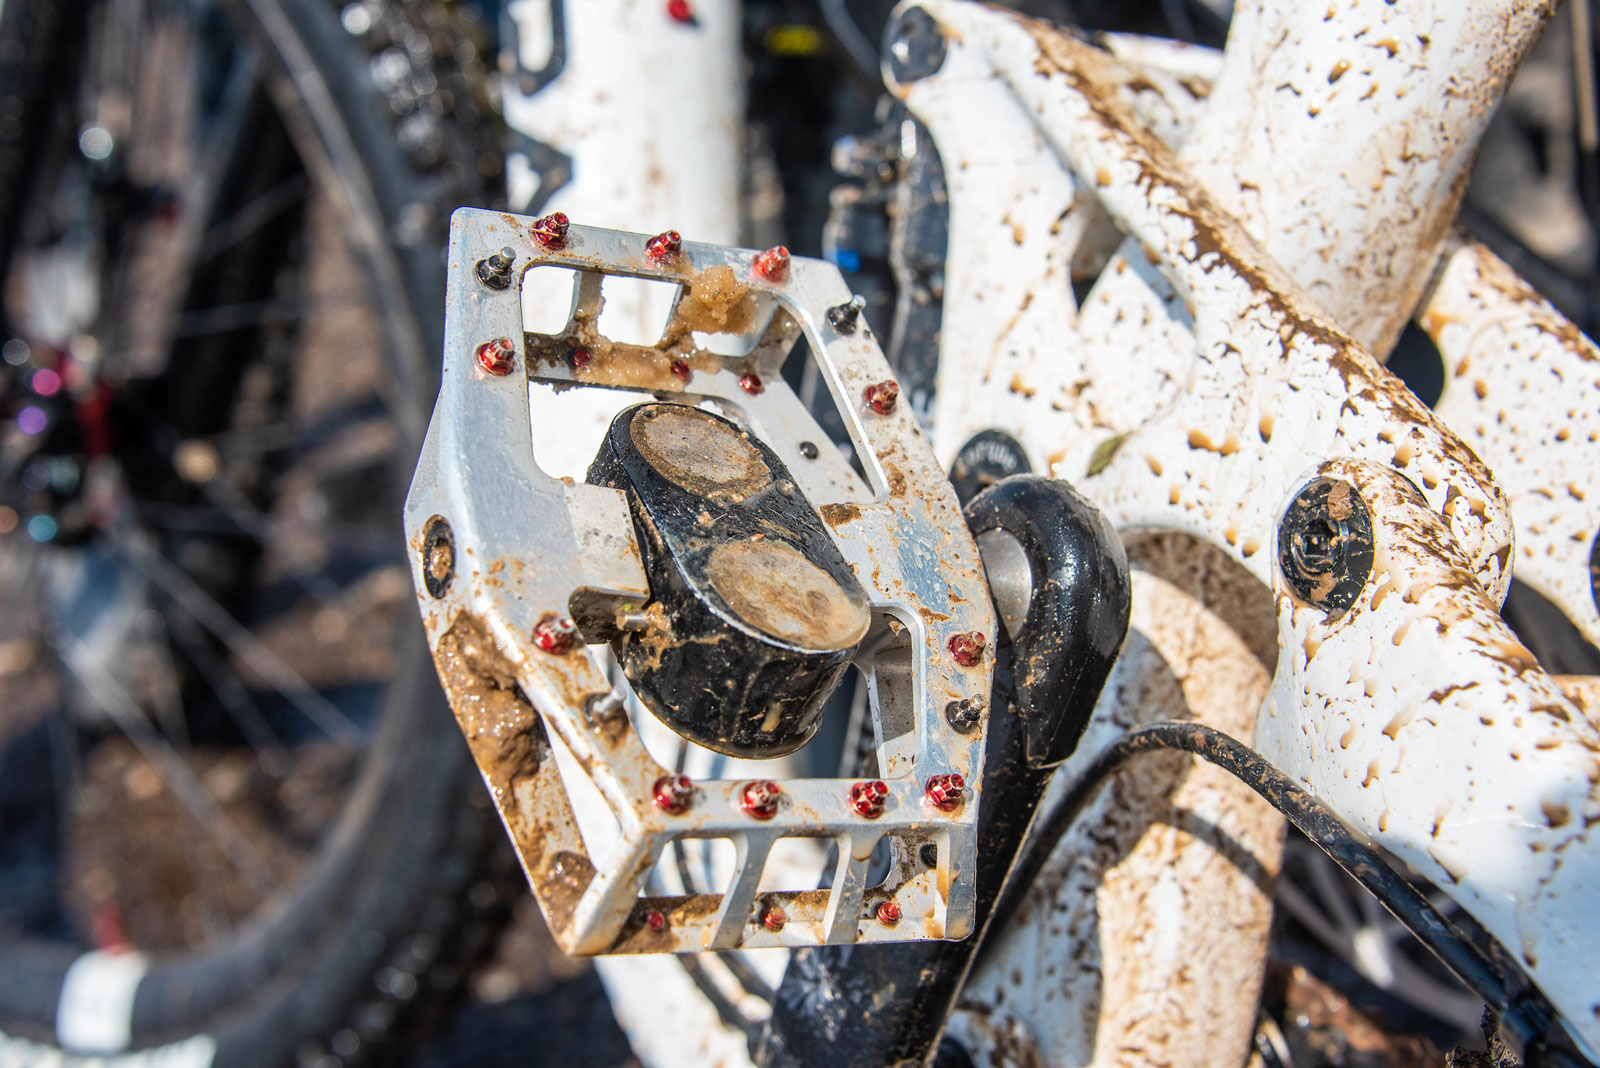 testing the pedals